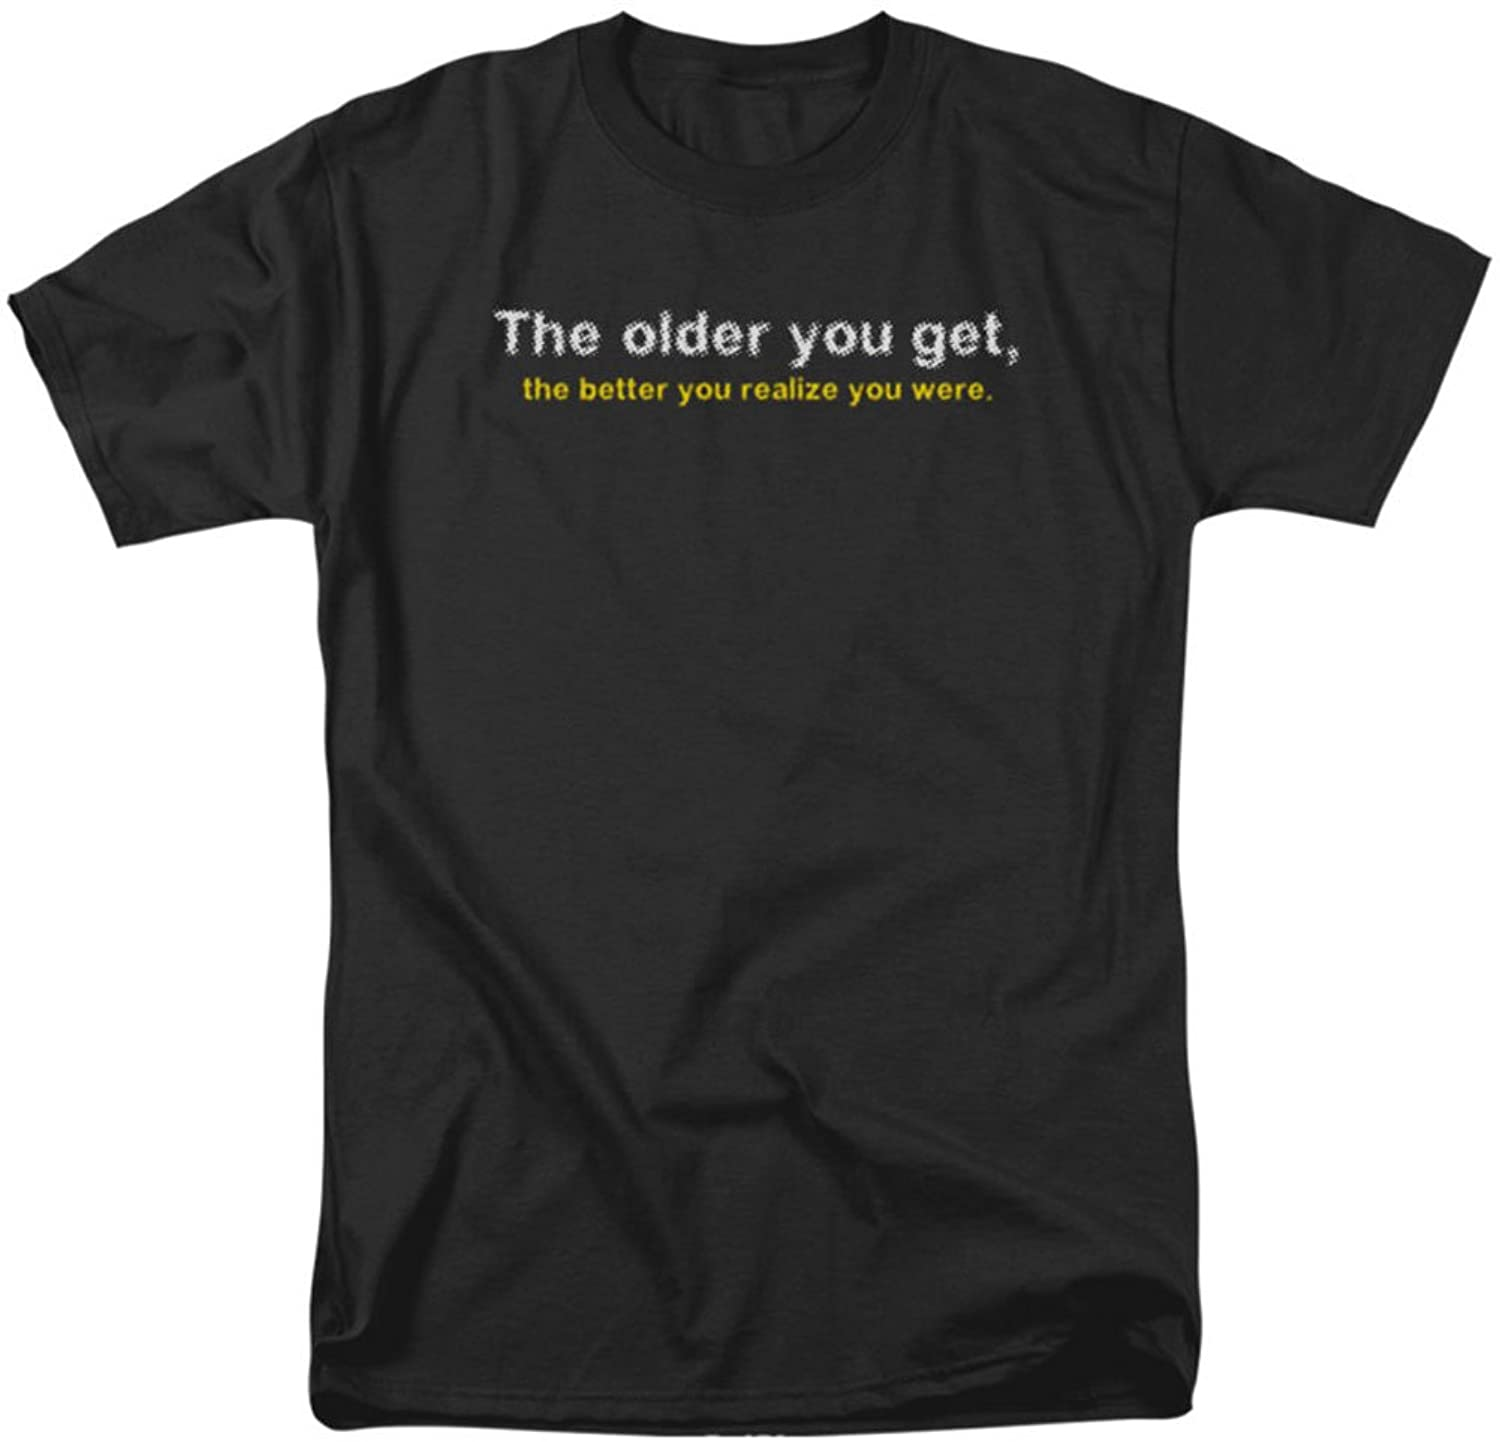 Funny Tees - Mens Older You Get T-Shirt